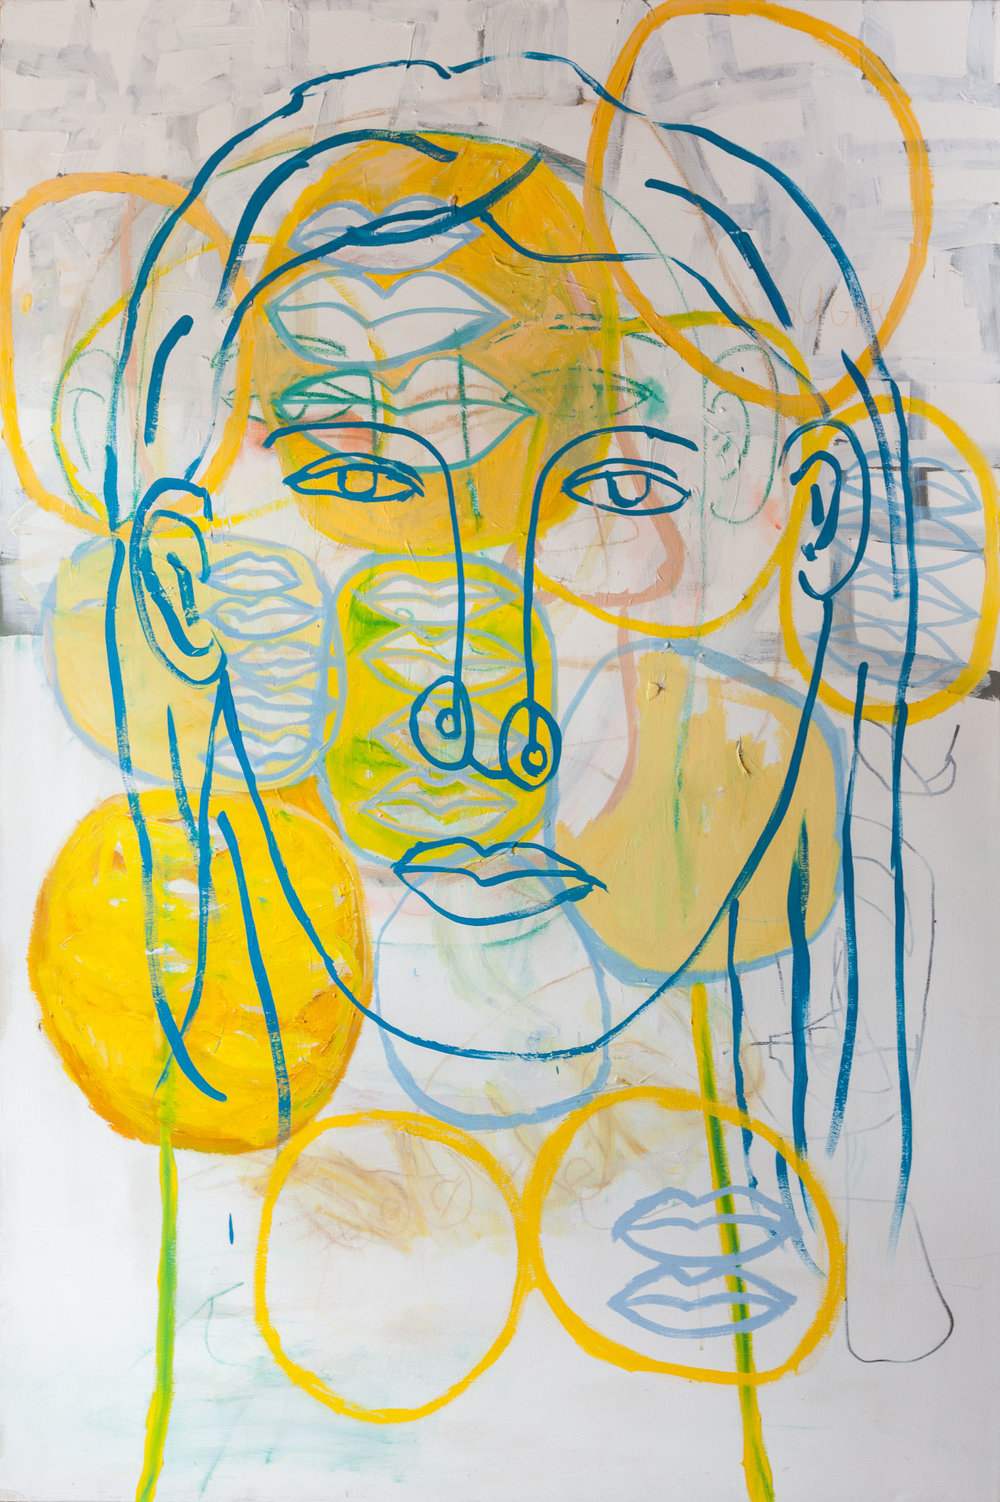 Woman's Head - Acrylic and marker on canvas72 x 48 inches(Click on image for detail)